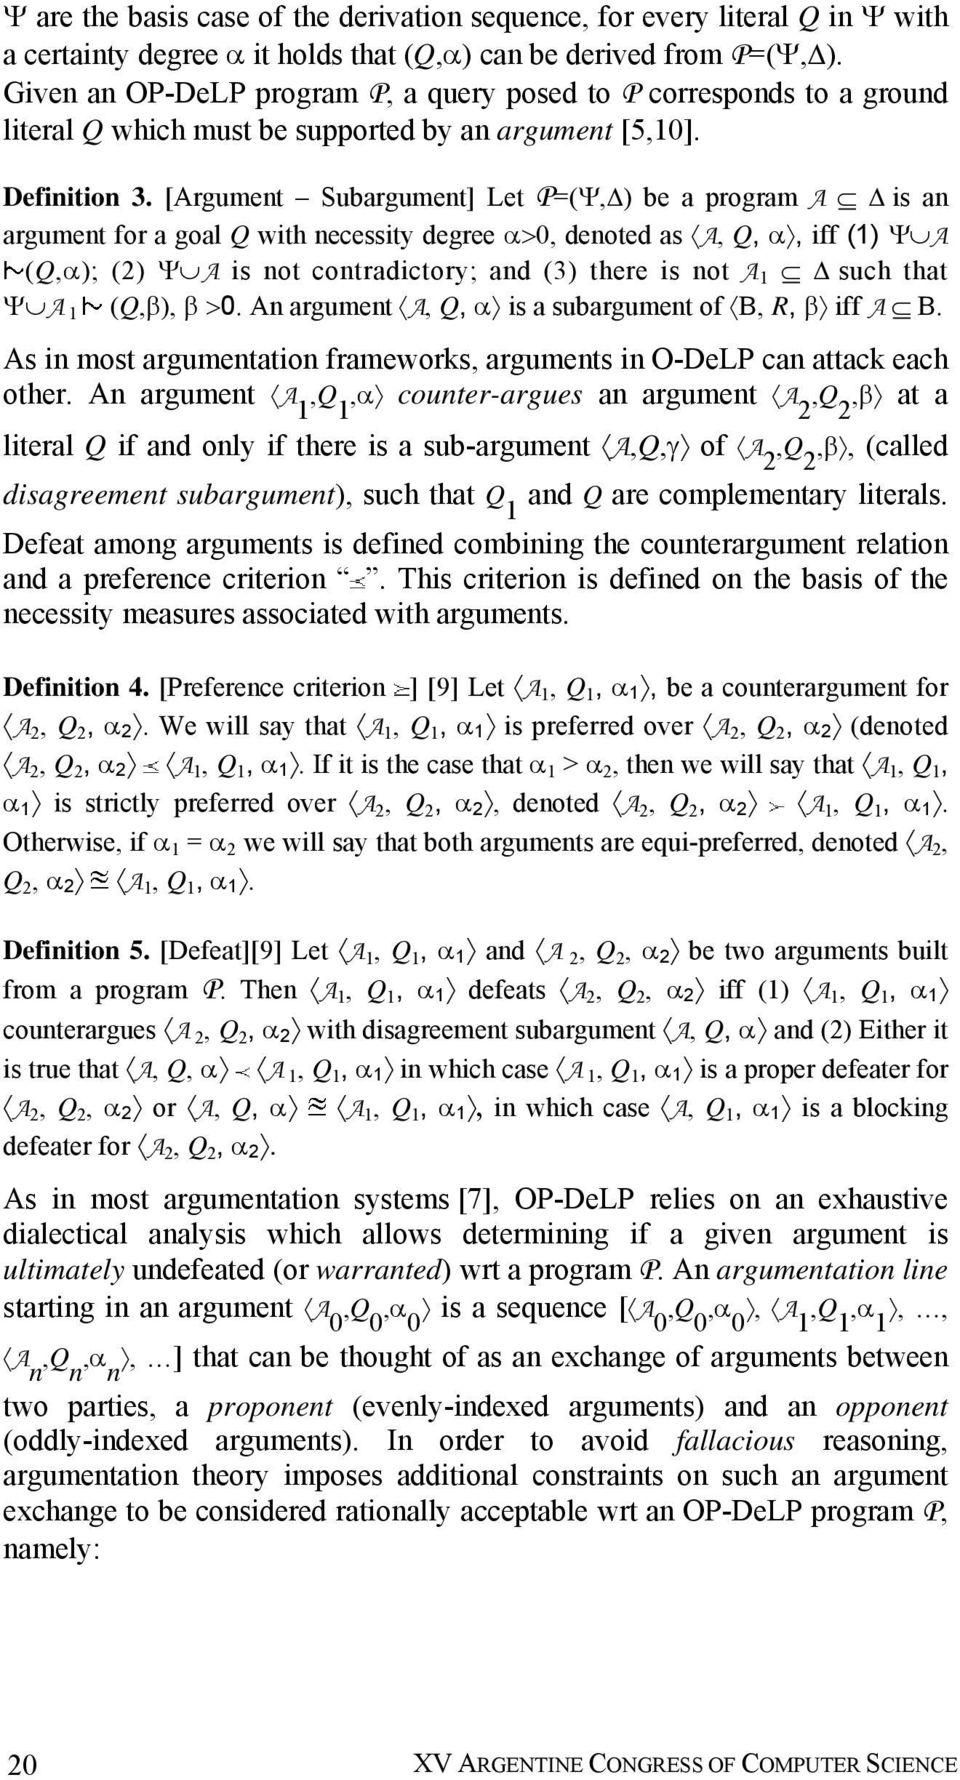 [Argument Subargument] Let P=(Ψ,Δ) be a program A Δ is an argument for a goal Q with necessity degree α>0, denoted as A, Q, α, iff (1) Ψ A (Q,α); (2) Ψ A is not contradictory; and (3) there is not A